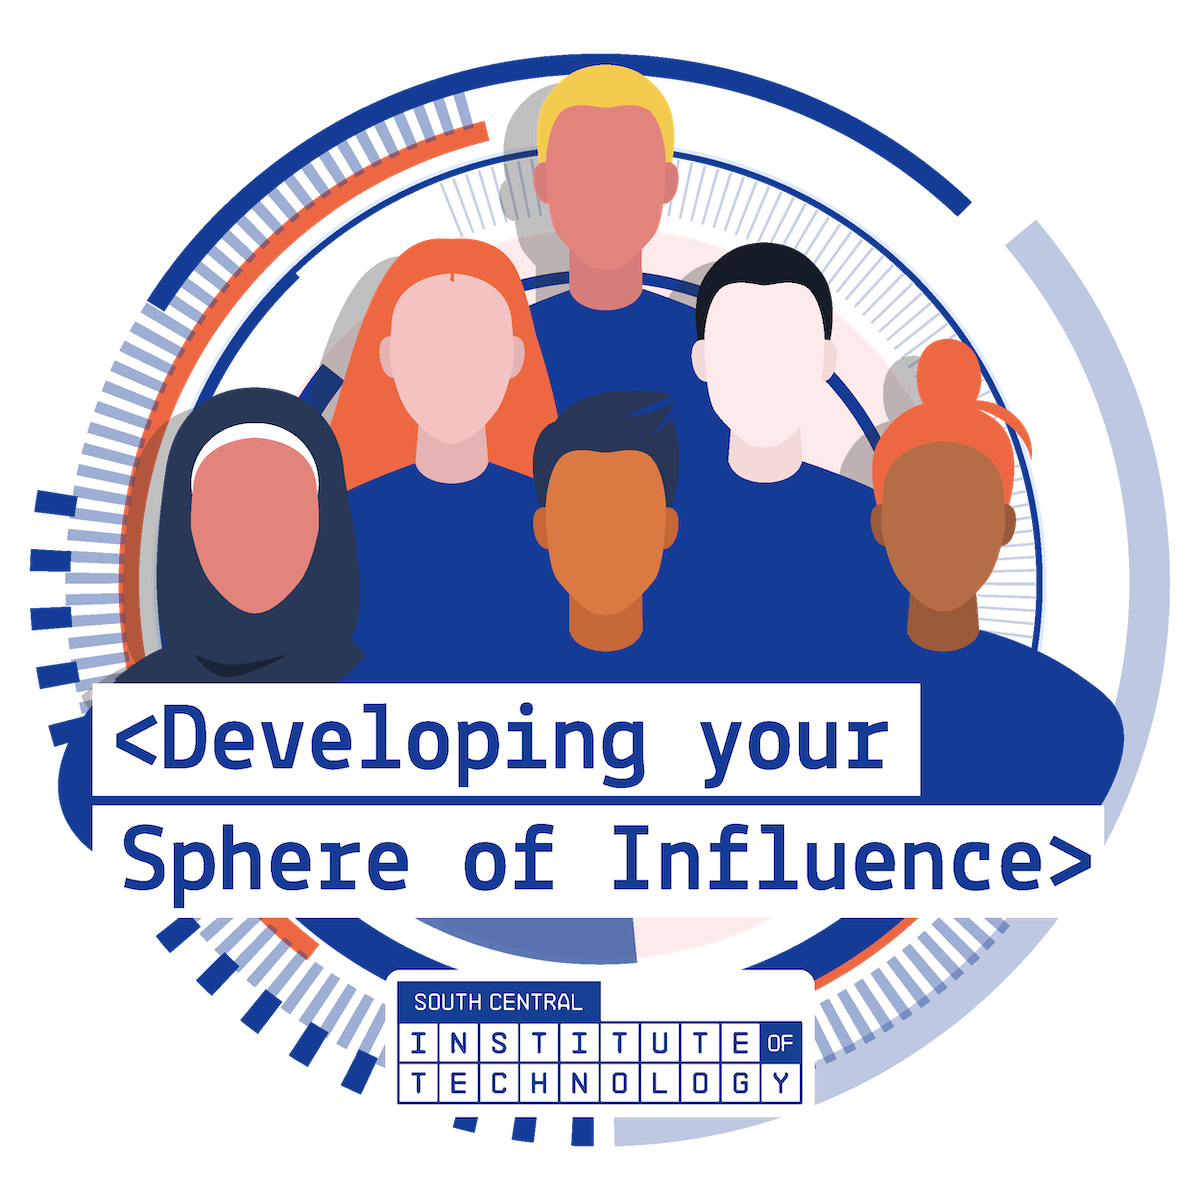 Developing your Sphere of Influence